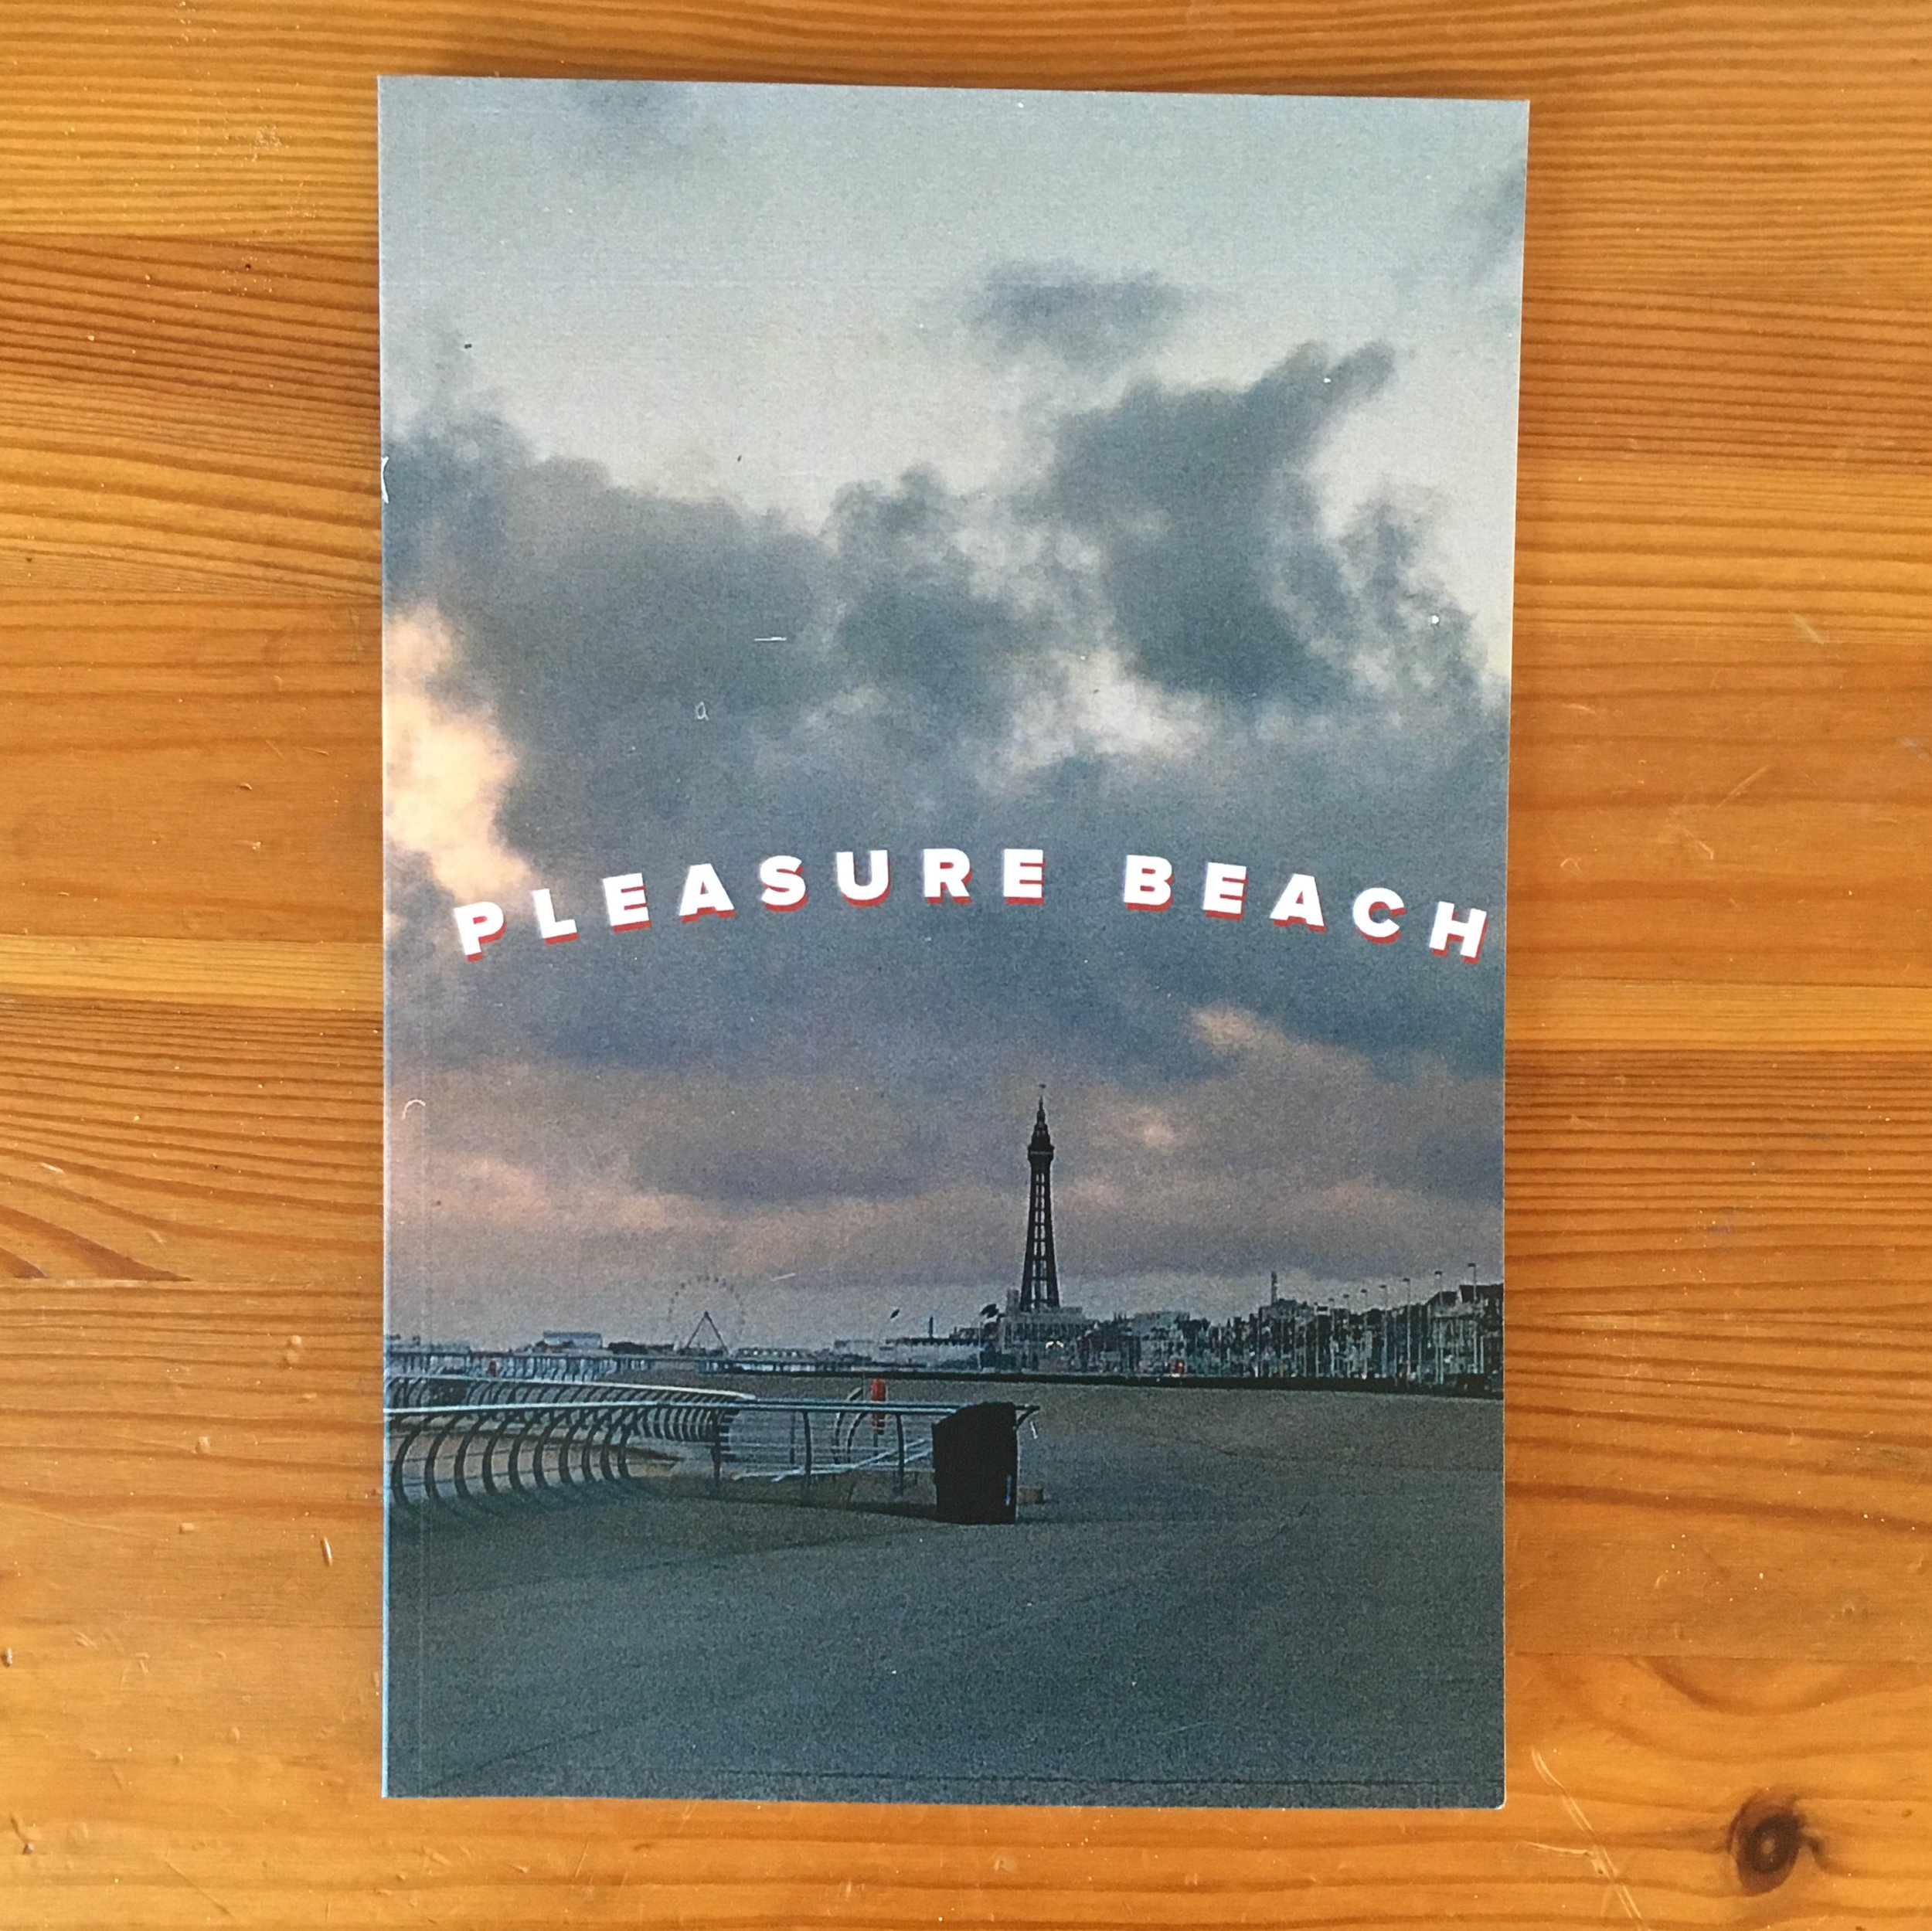 Pleasure Beach - James Shaw (Authentic Aesthetic)